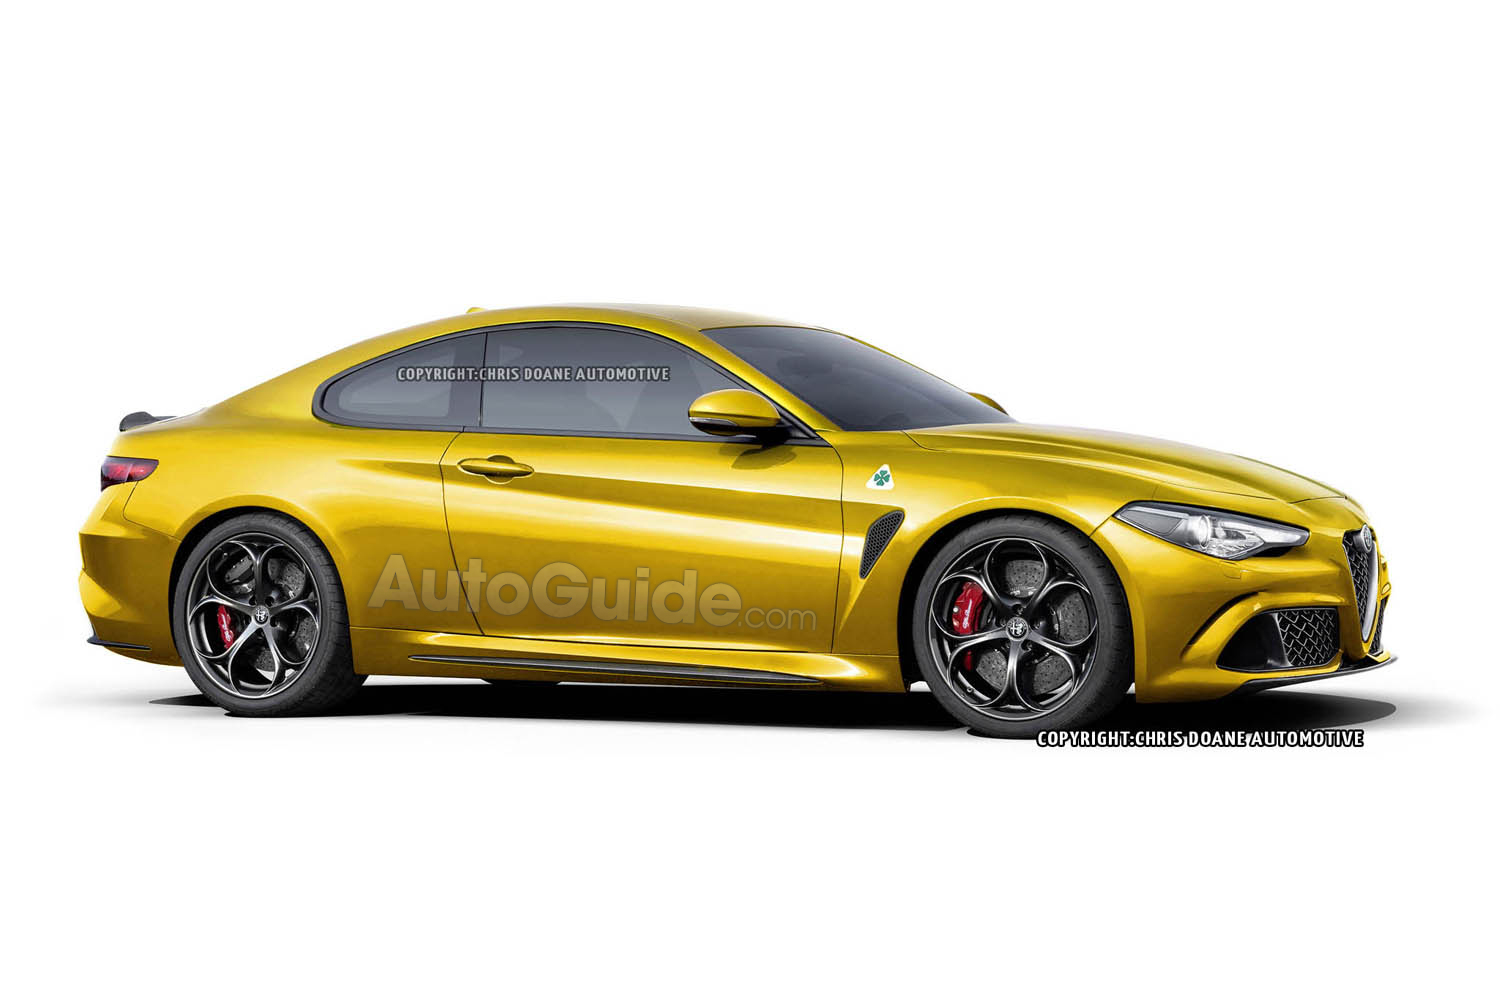 2017 Alfa Romeo Giulia Coupe, Wagon Rendered » AutoGuide.com News